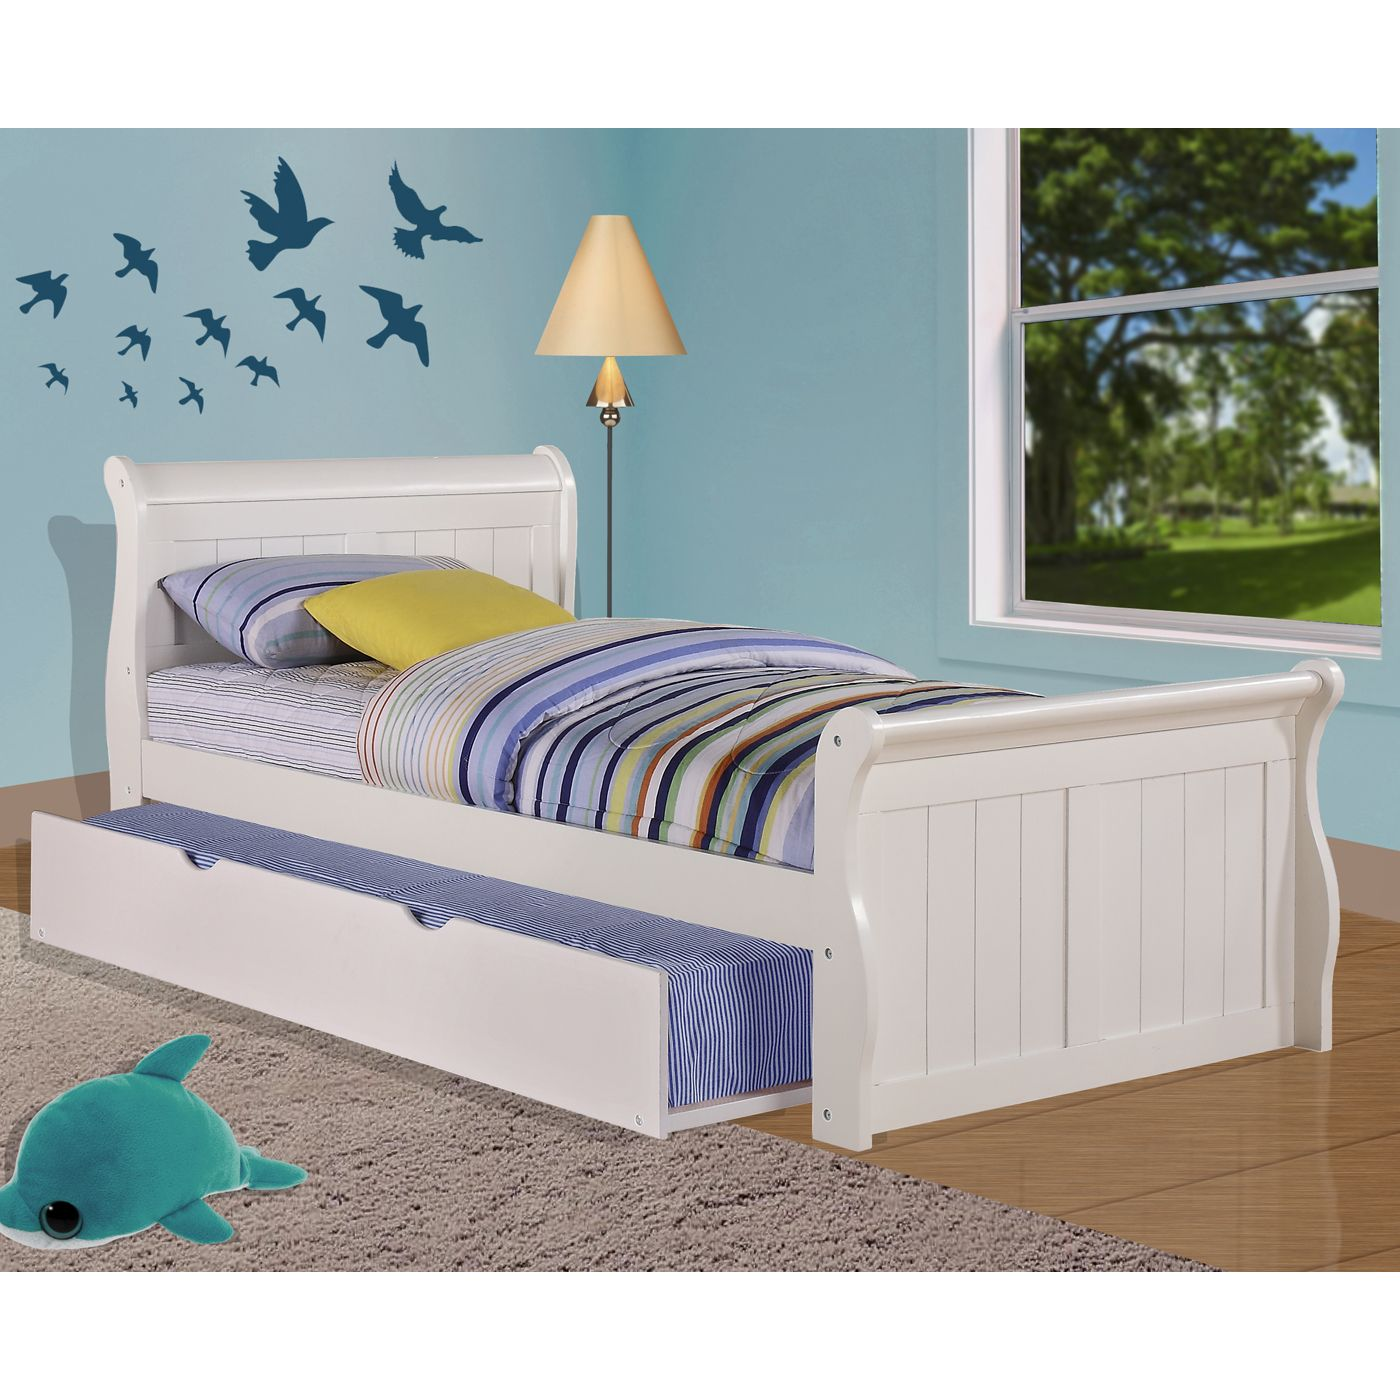 Shop Pivot Direct PD_325 Donco Kids Sleigh Bed with